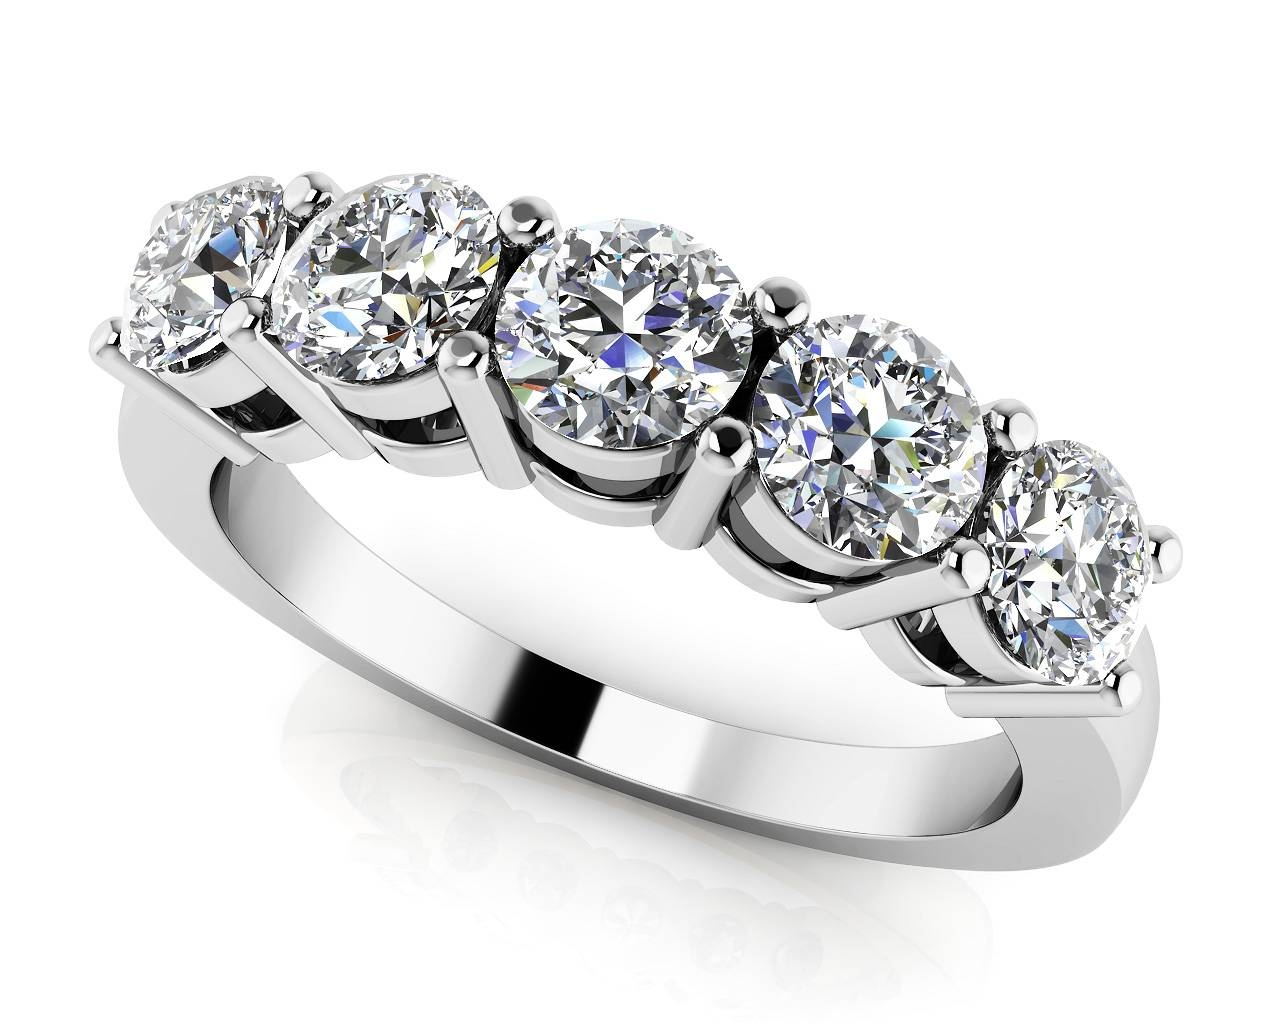 Design Your Own Diamond Anniversary Ring & Eternity Ring Regarding Current Five Stone Anniversary Rings (View 13 of 25)